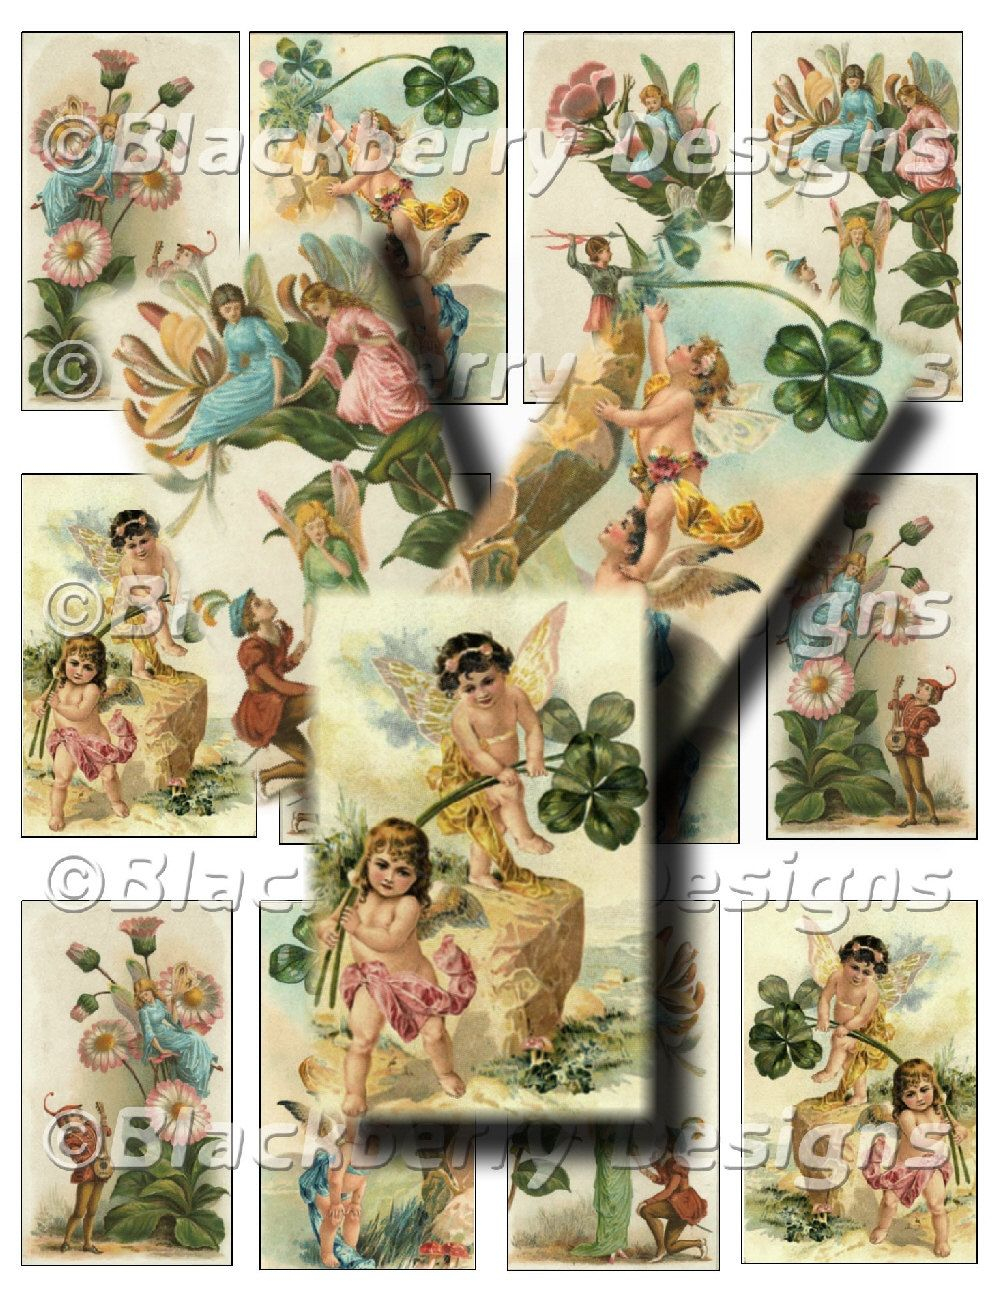 Free Printable Decoupage Papers   Cardstock, Decoupage Paper - Free Printable Decoupage Images